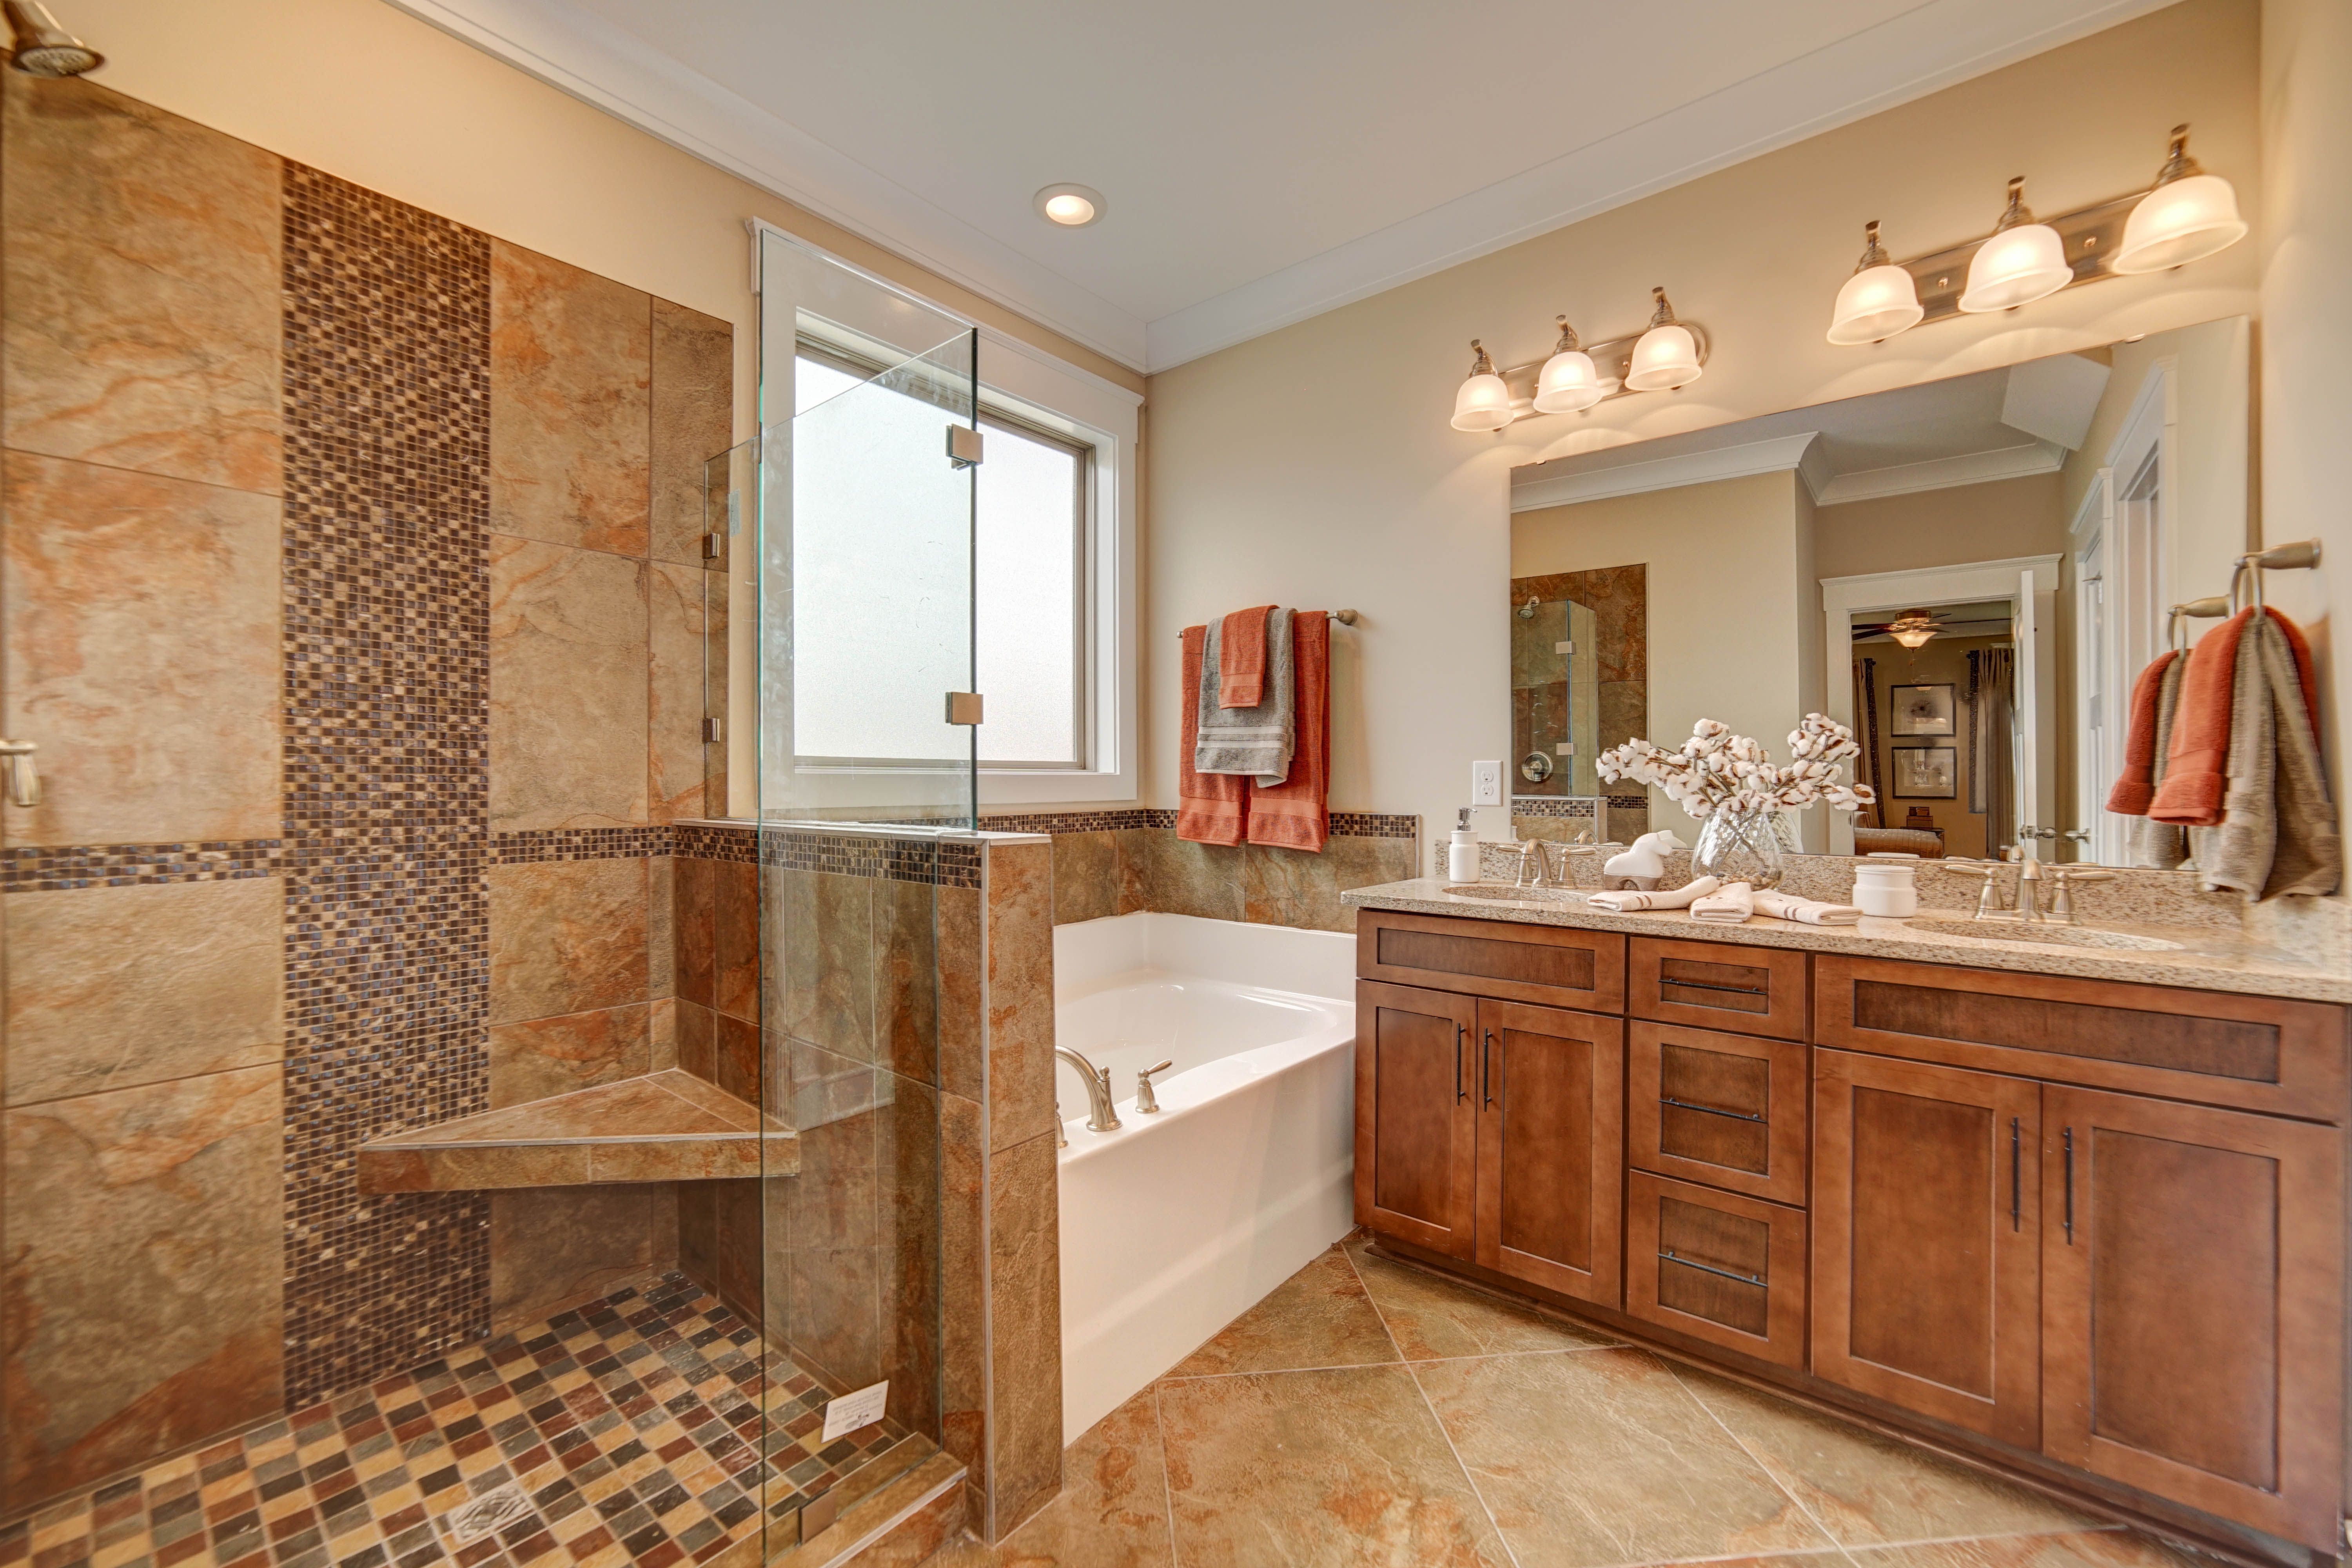 Luxurious relaxing bathroom with fancy tile shower. | Interior ...